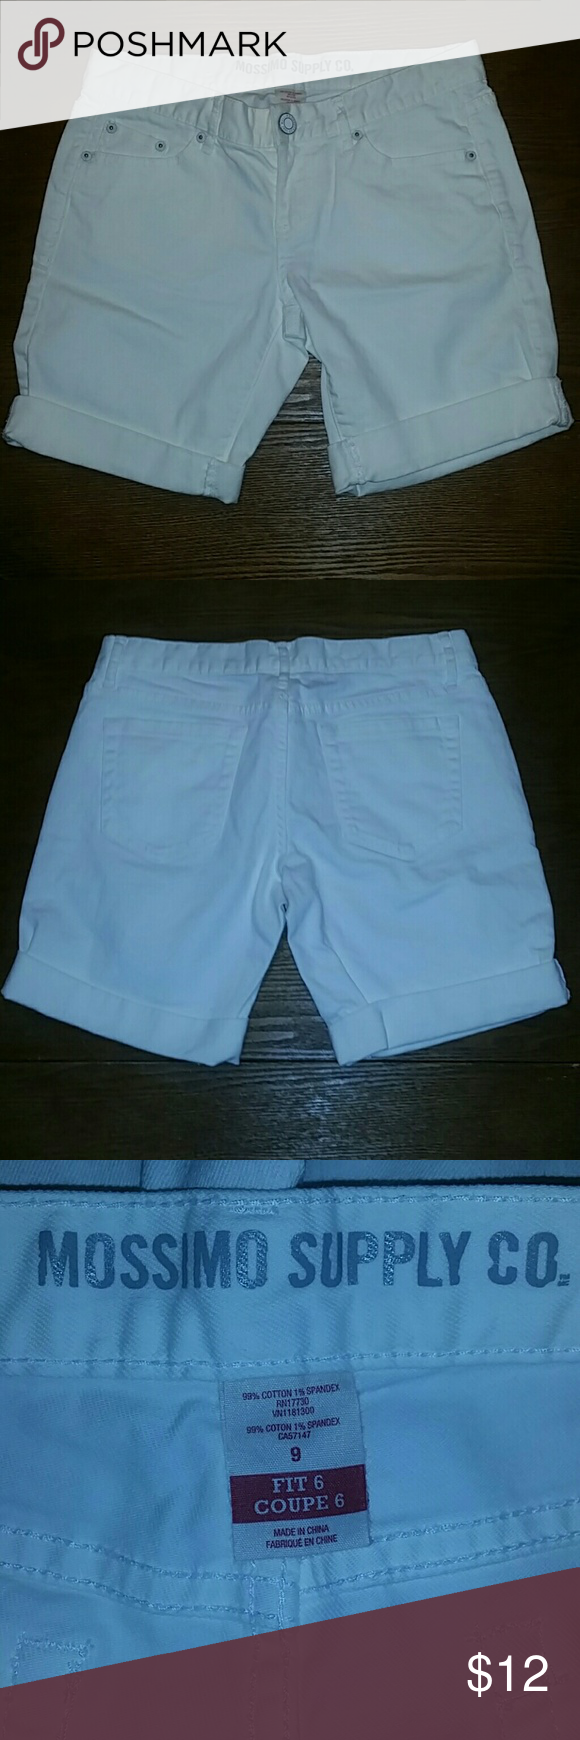 Mossimo White Denim Bermuda Shorts Size 9 Like new (no tags and only wore once) jean shorts from Mossimo Target. Size 9. Button zip closure. Beltloops. 5 pocket. Roll up cuffs. 31 inch waist. 8 inch inseam. Mossimo Supply Co Shorts Bermudas